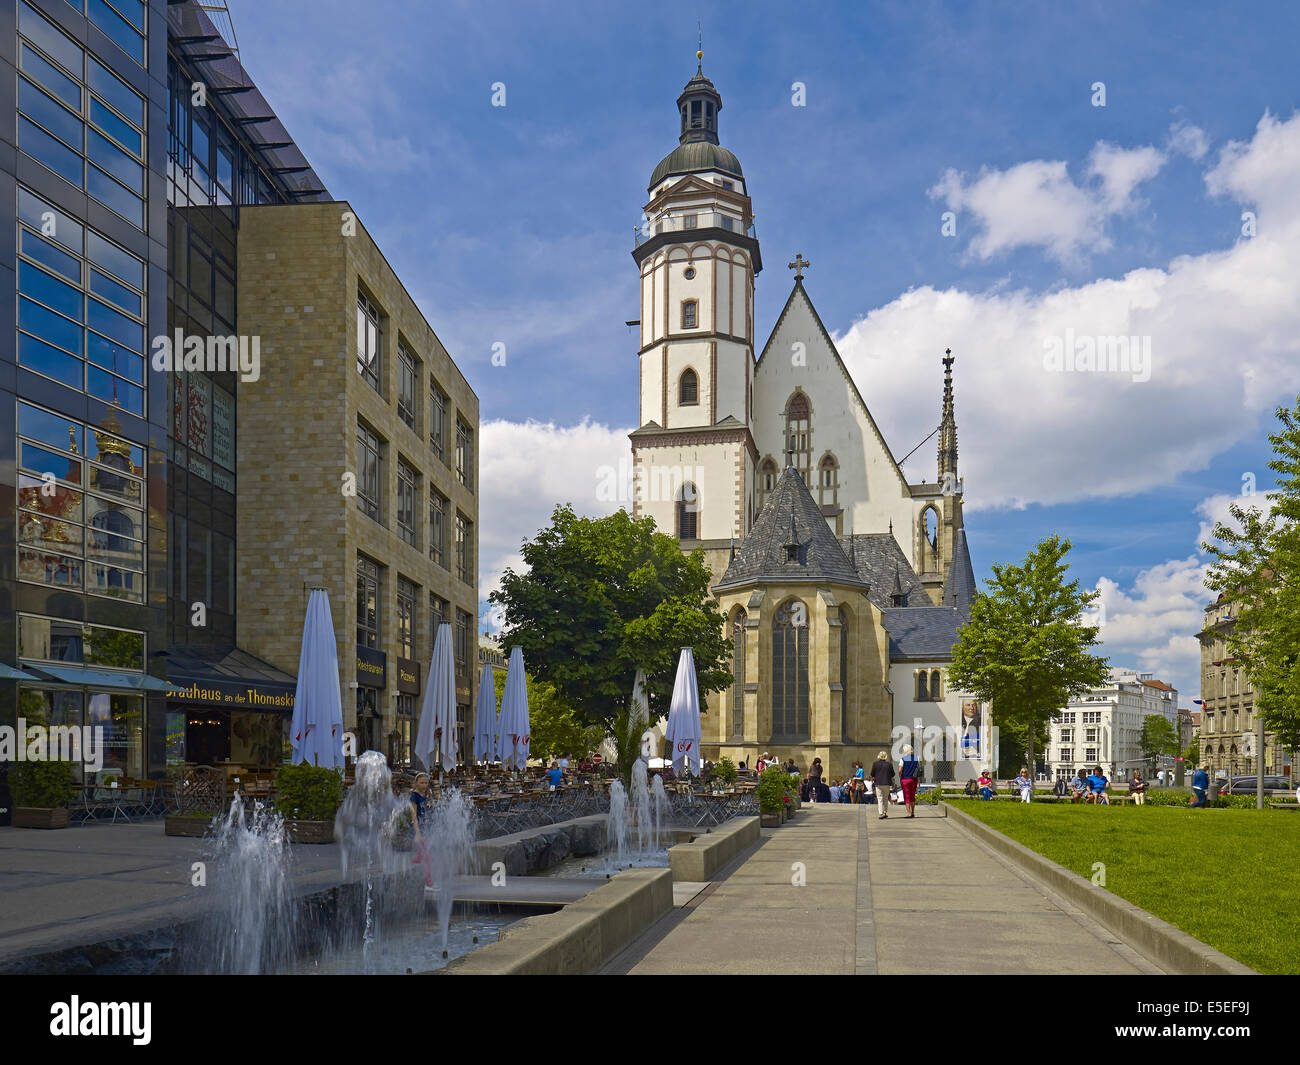 St. Thomas Church in Leipzig, Germany - Stock Image